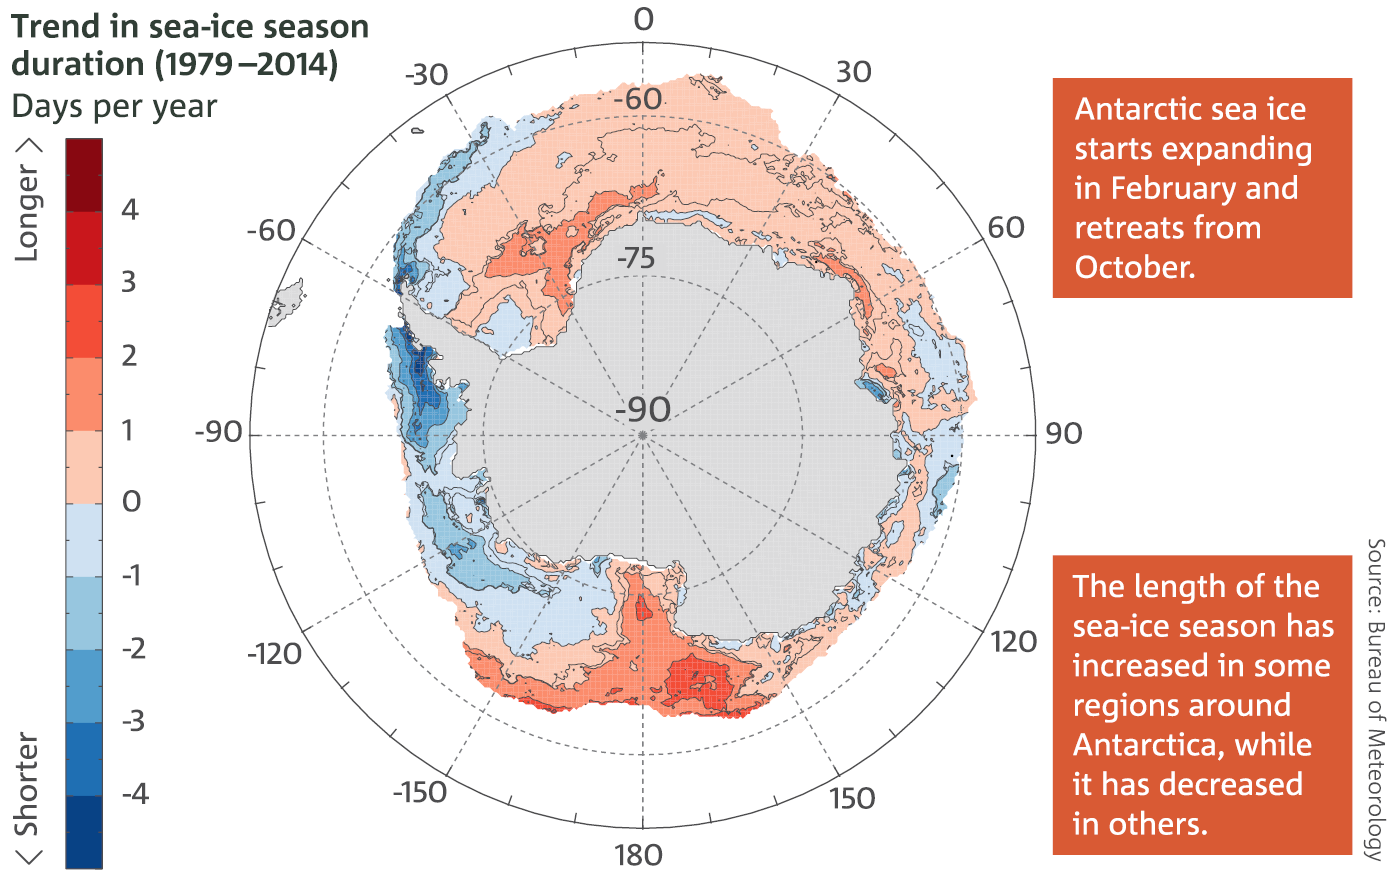 Map: Trends in the length of the sea-ice season duration each year (in days per year) around Antarctica, 1979–2014. Trend in sea-ice season duration (1979– 2014) Antarctic sea ice starts expanding in February and retreats from October. The length of the sea-ice season has increased in some regions around Antarctica, while it has decreased in others.